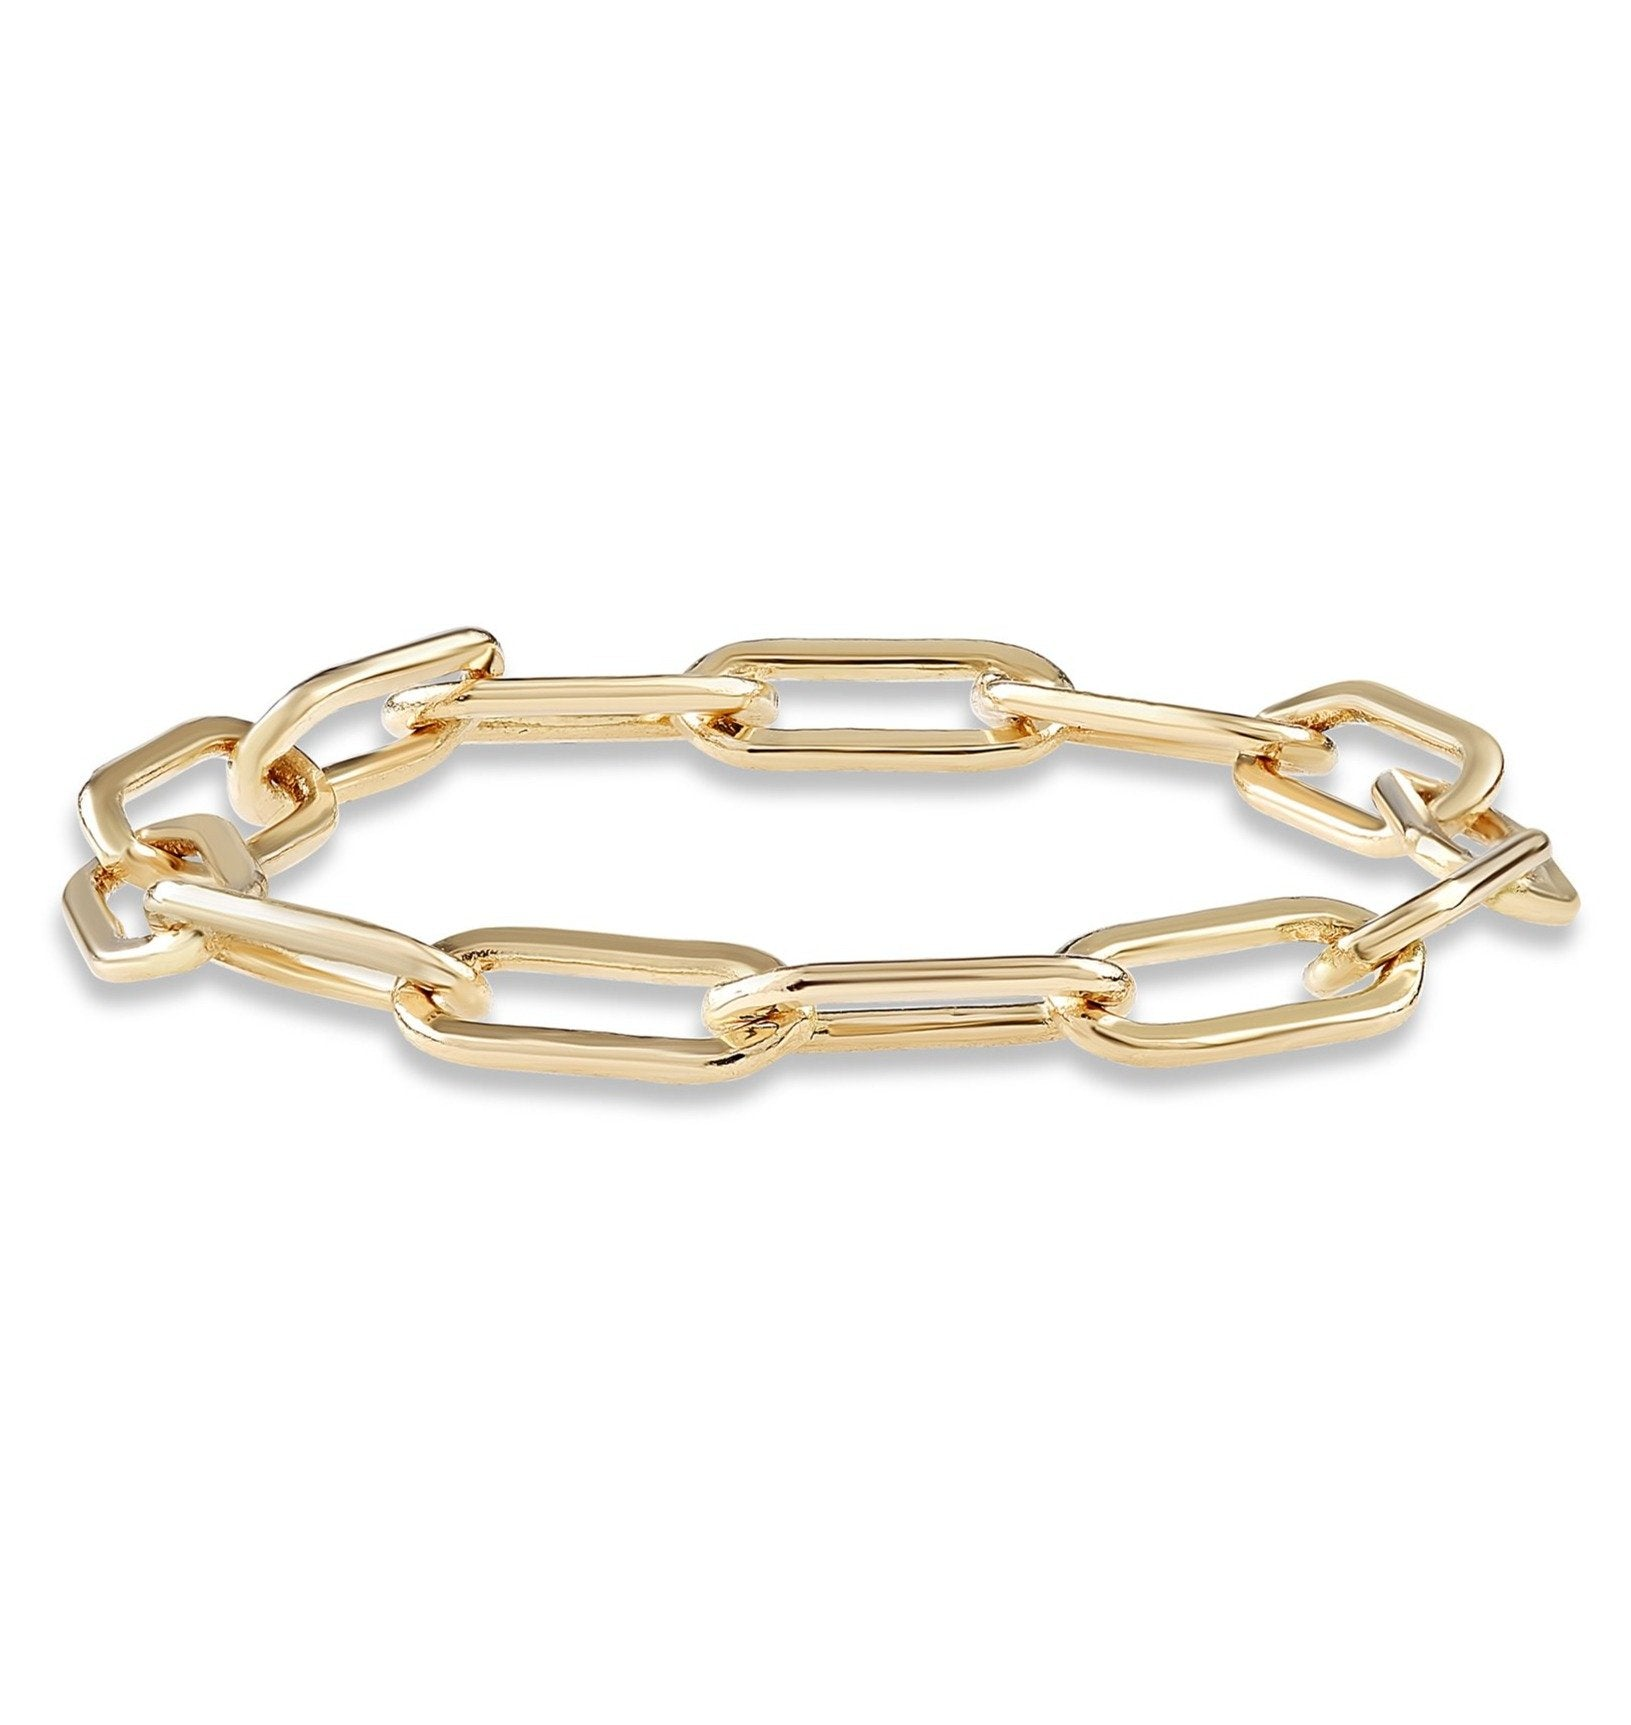 Chain Ring - Helen Ficalora Jewelry - 14k Yellow Gold